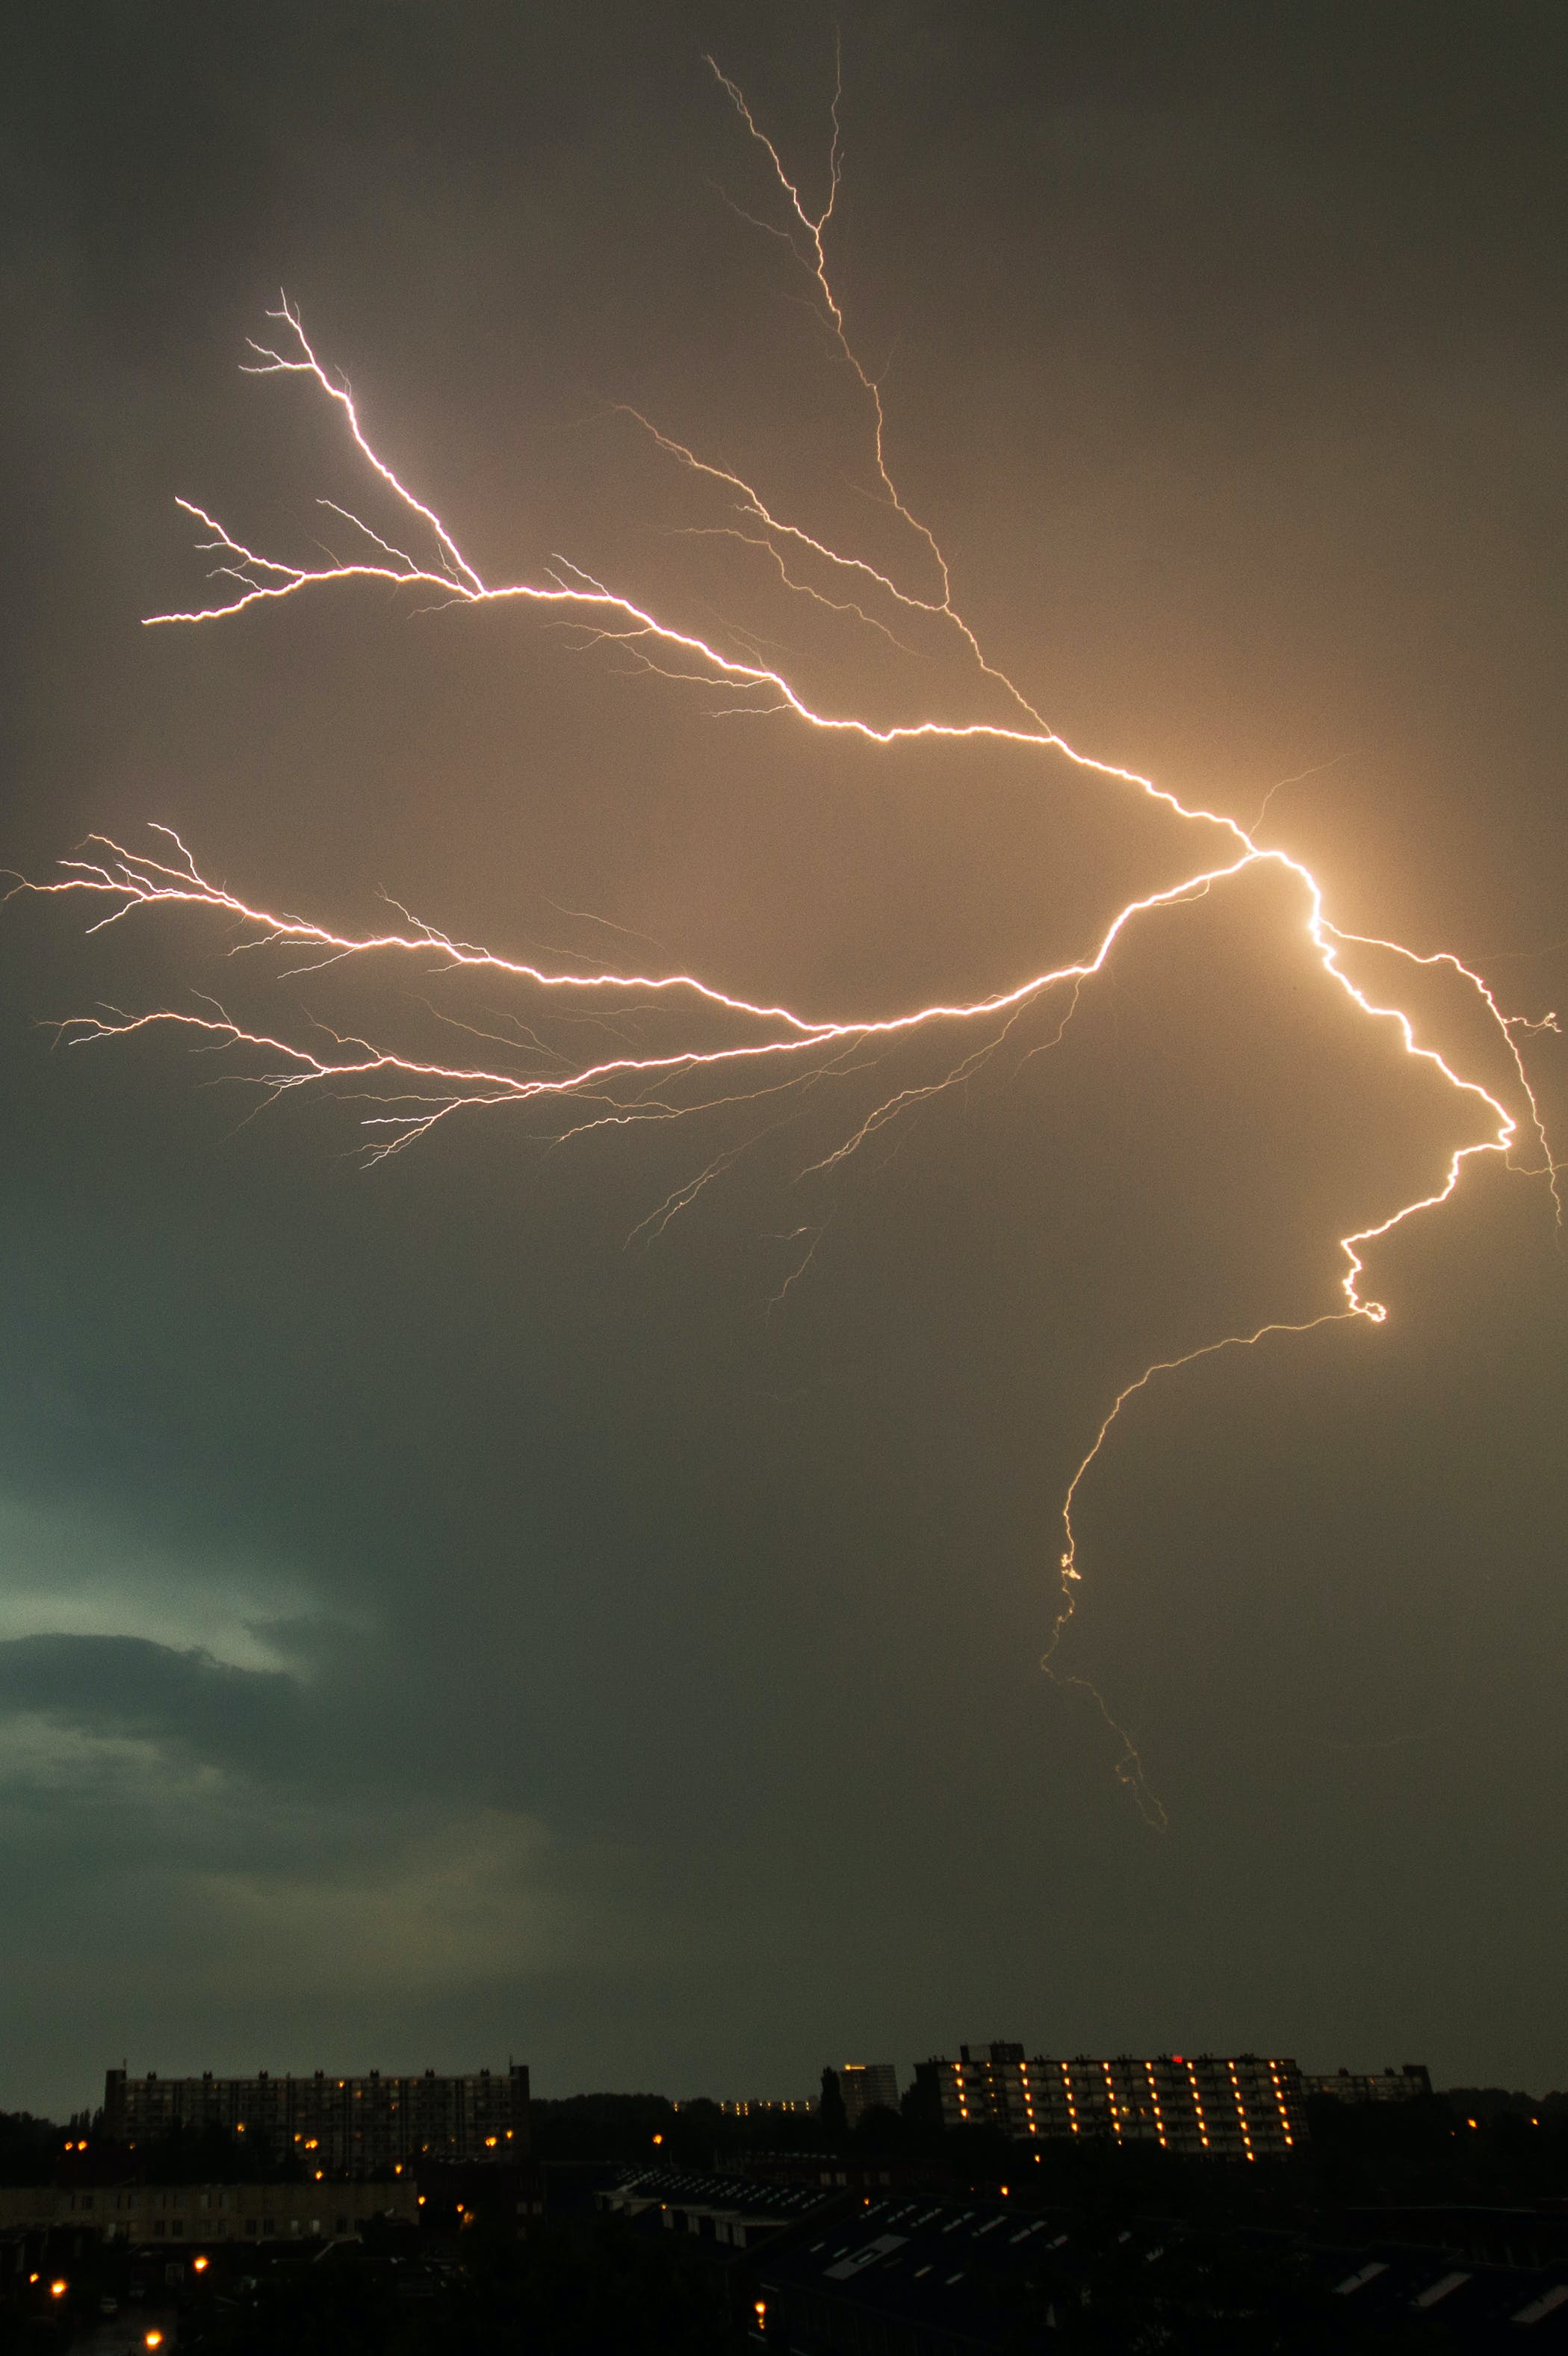 Free stock photo of nature, electricity, lovely, lightening